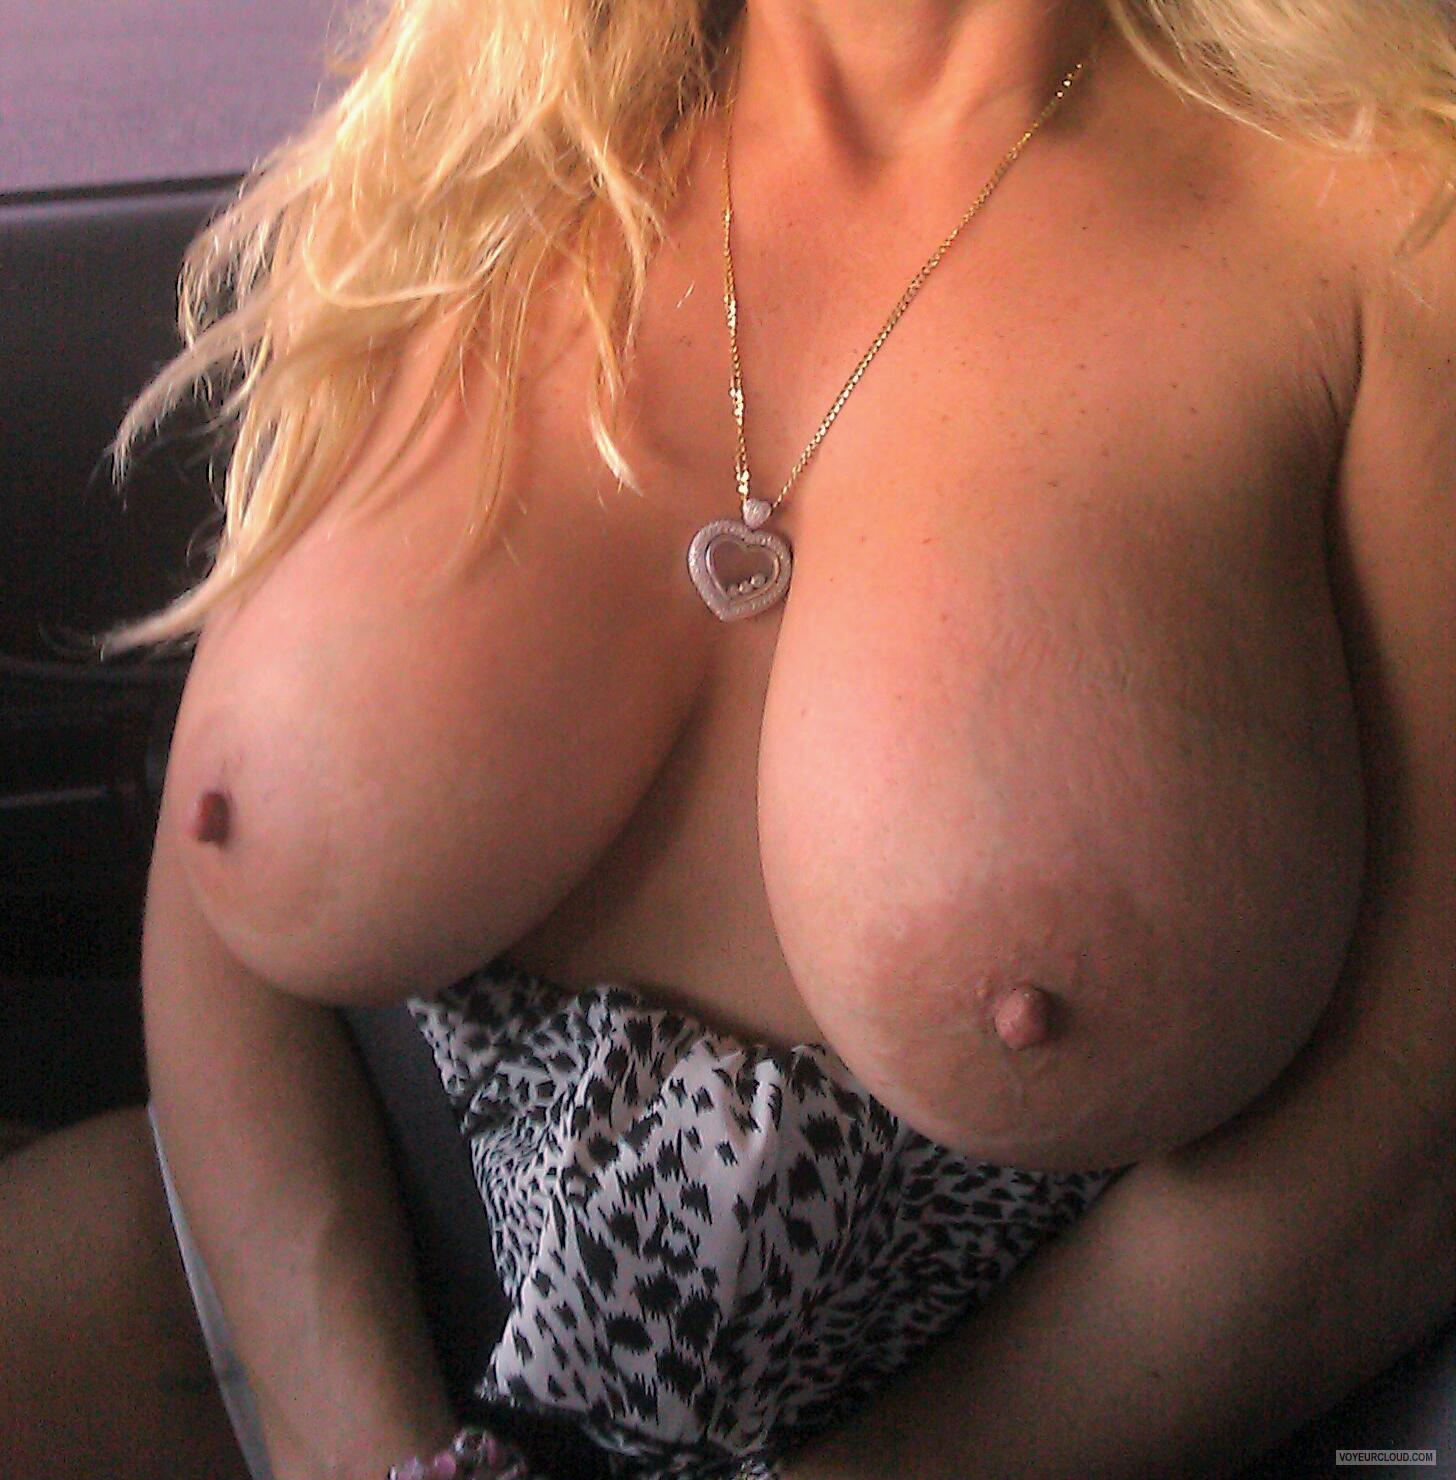 Big Tits Of My Wife LolaDD